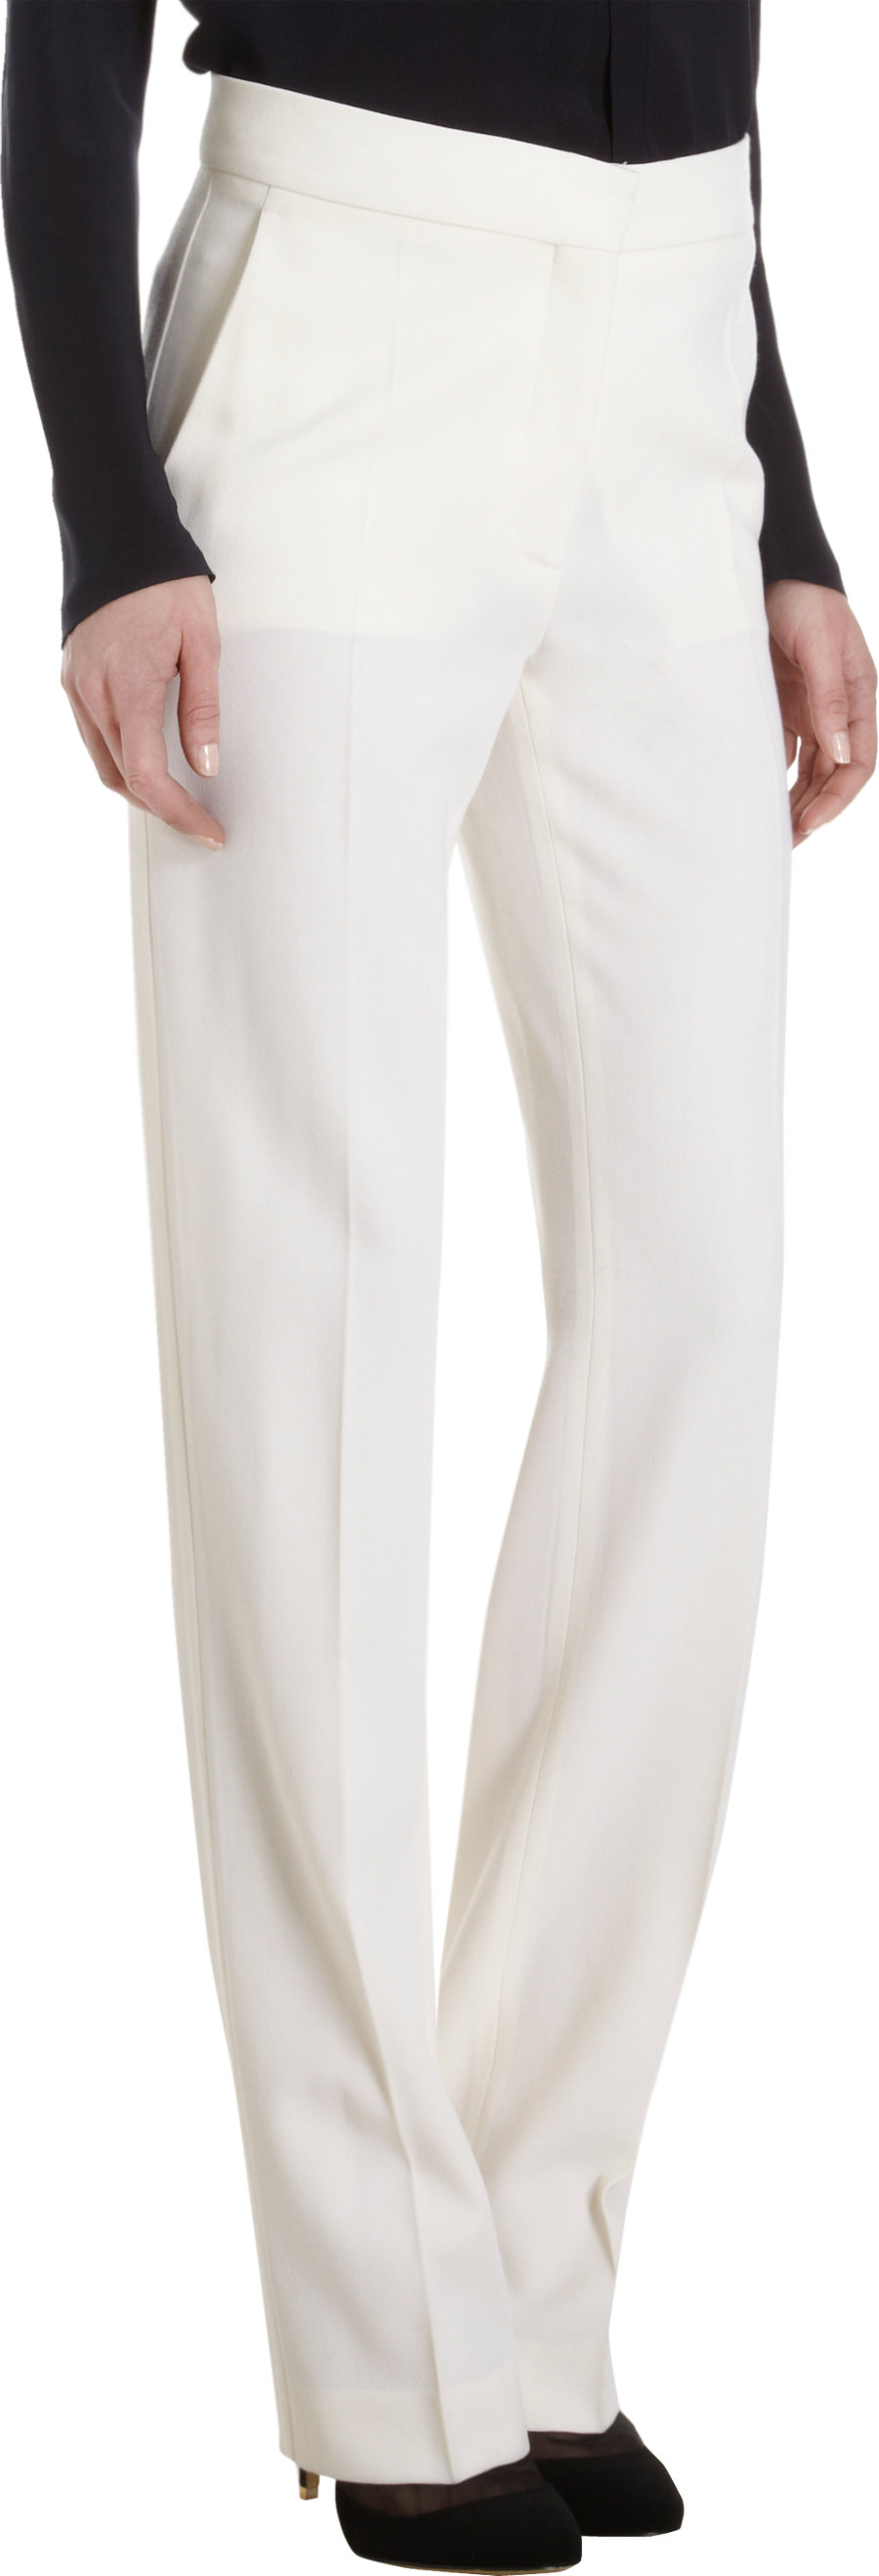 Outlet Locations Sale Online straight-leg trousers - White Stella McCartney Clearance Cheapest Price Sale Cheap Online Best Wholesale Cheap Online JLsW10mxc